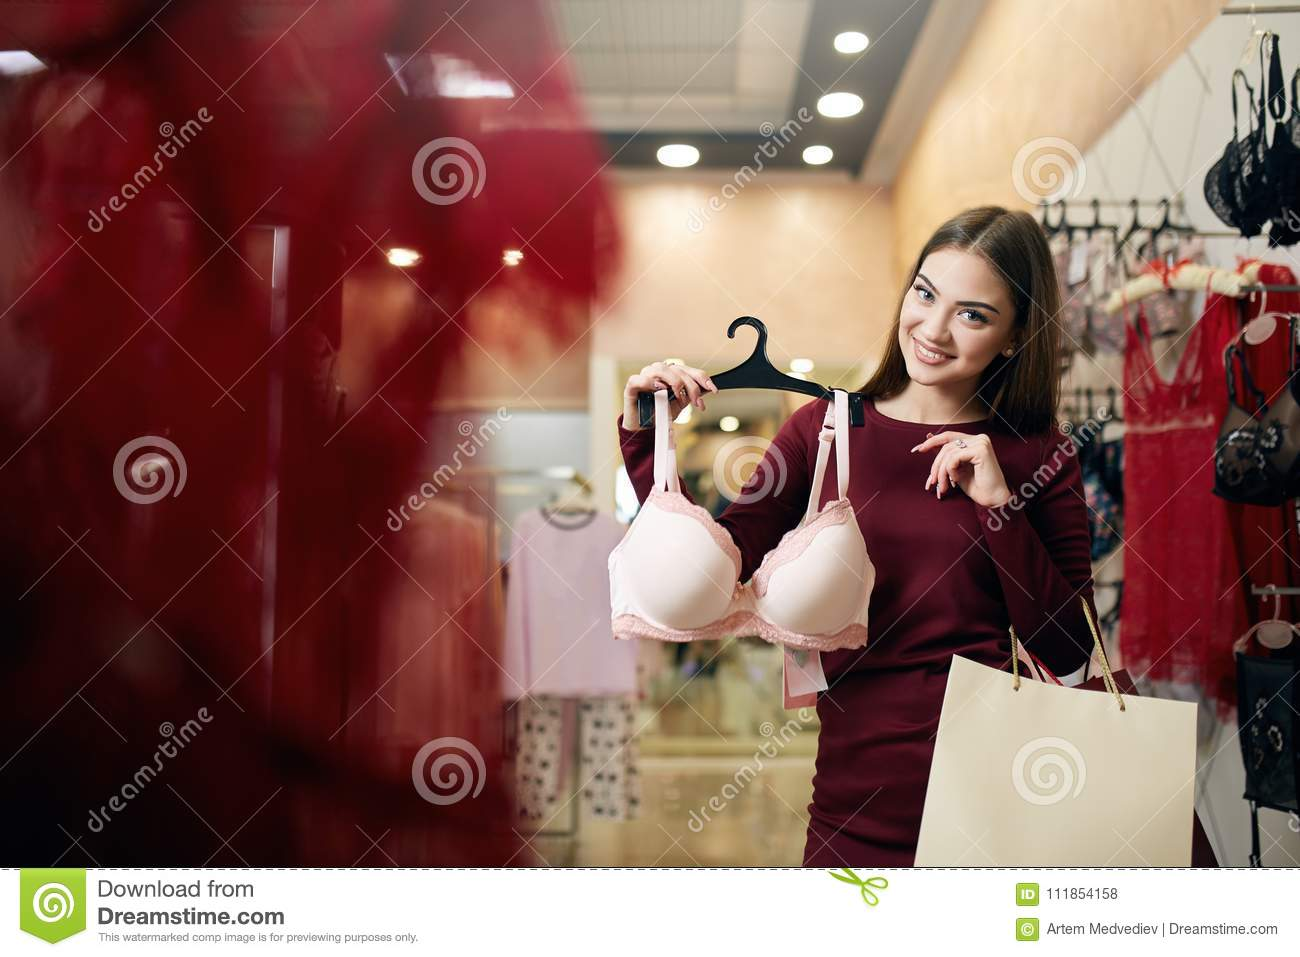 0f5343196a98a Young woman chooses brassiere among set in a boutique. Pretty girl  considers bra with shopping bags in her hand in underwear store.  Consumerism concept